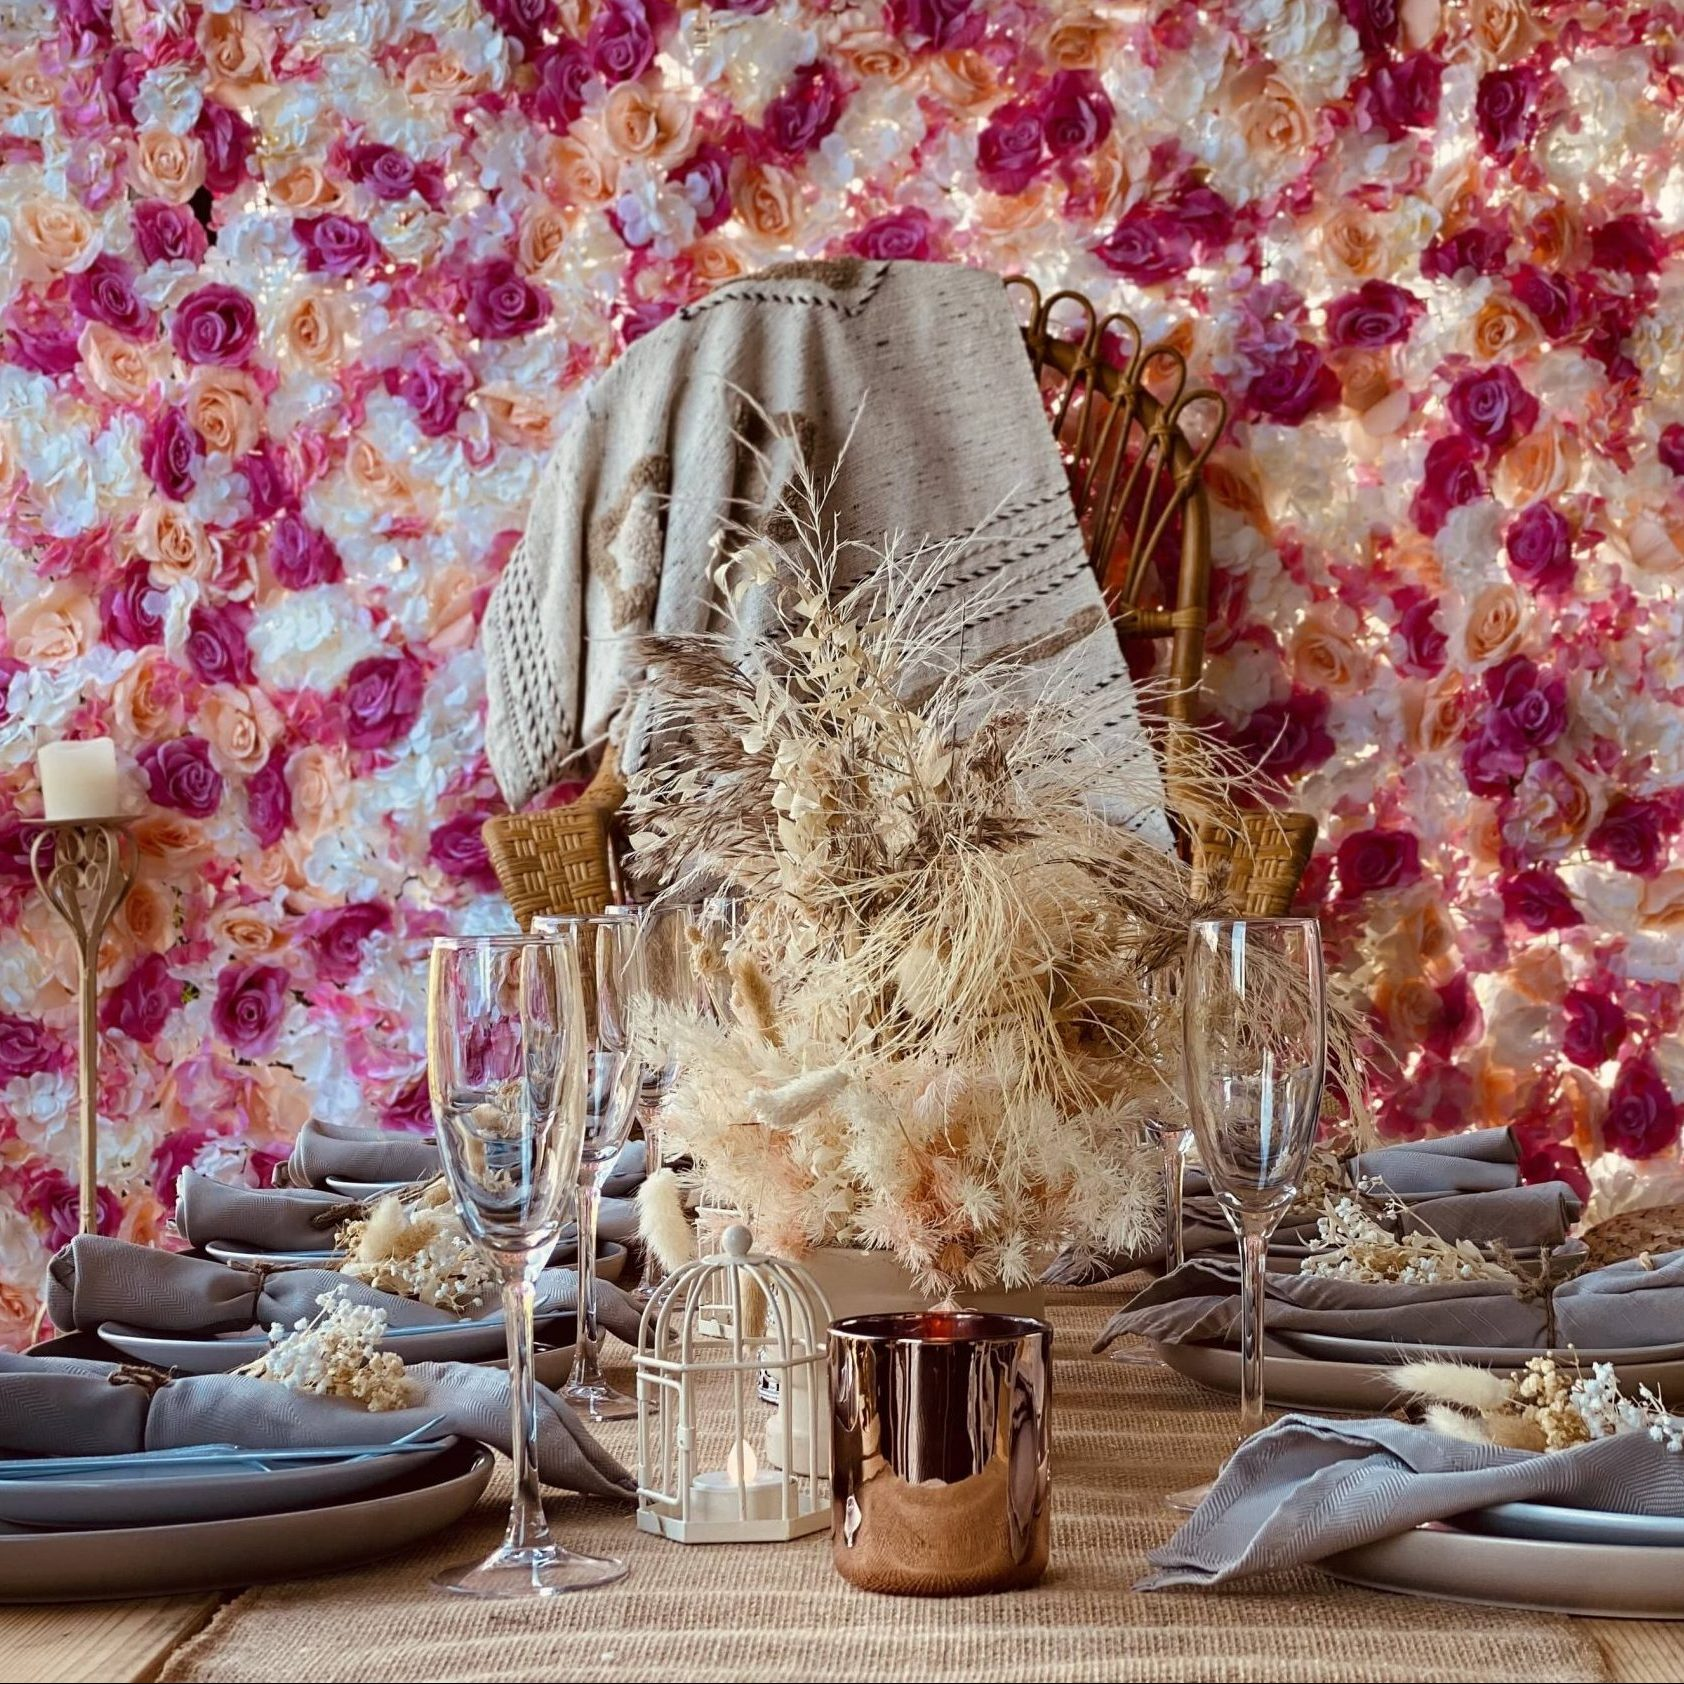 Party styling Melbourne